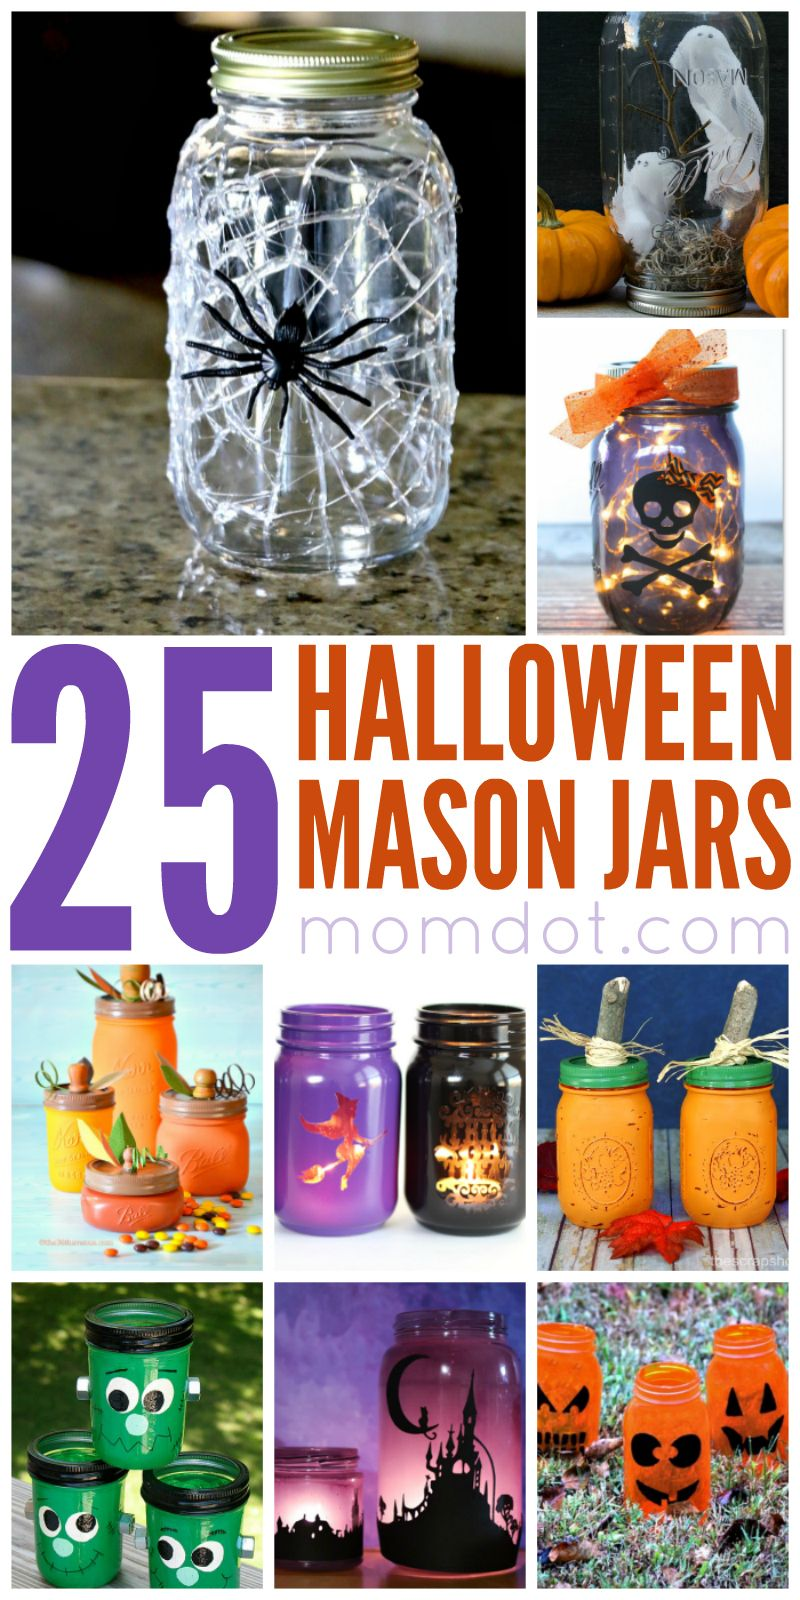 25 Halloween Mason Jar Ideas - #masonjarcrafts